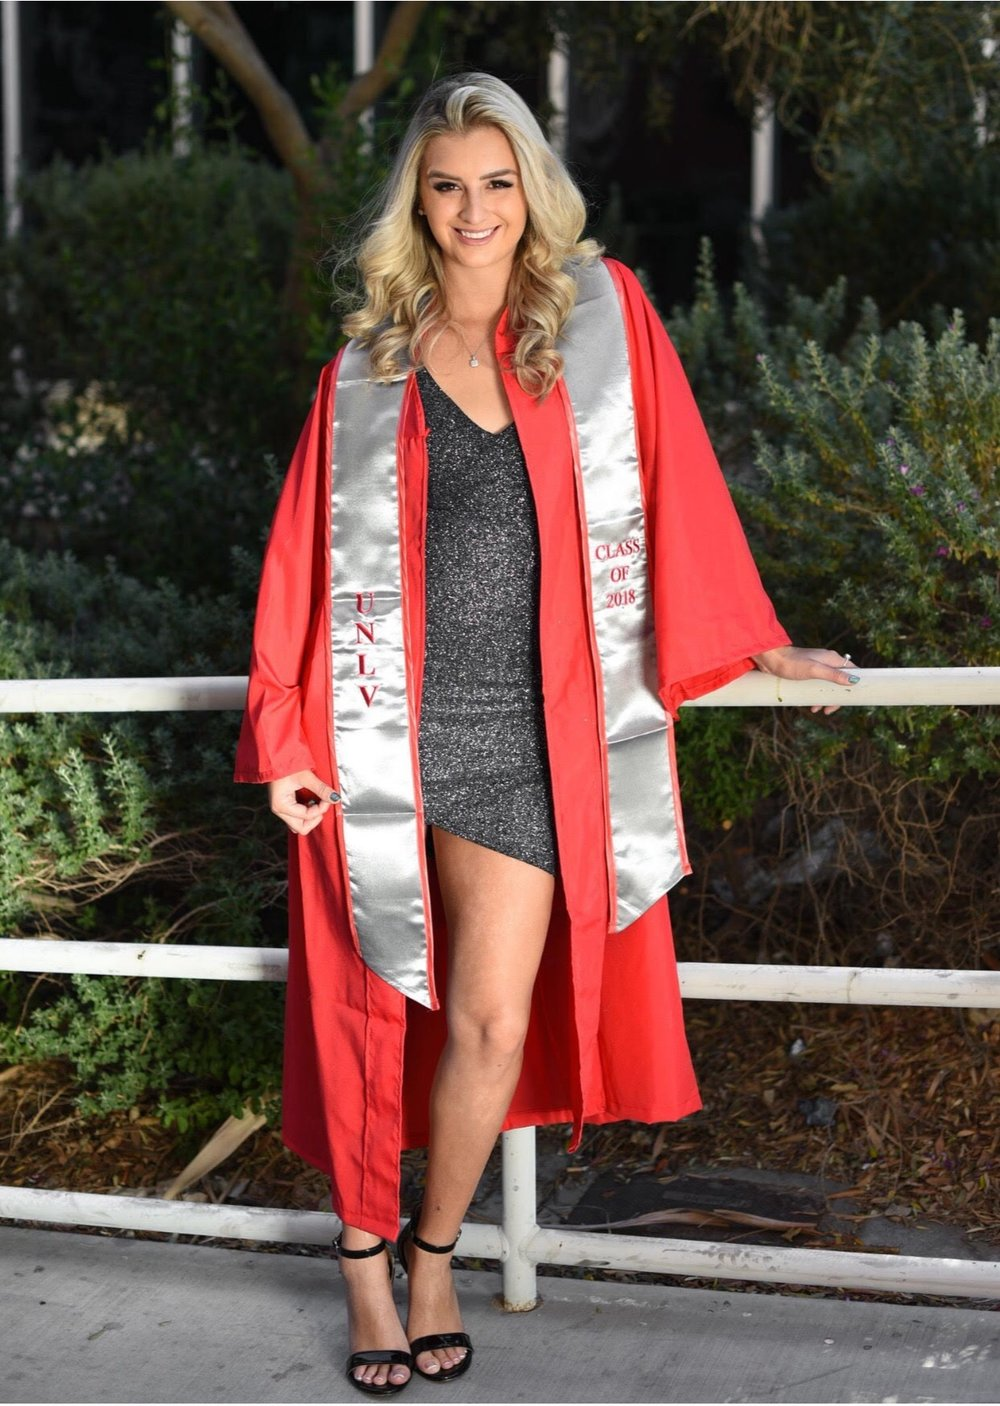 This past Fall Taylor graduated from college (UNLV) and will go full bore on her career and business, PressBox MX, along with continuing to rip it up on her dirt bike.